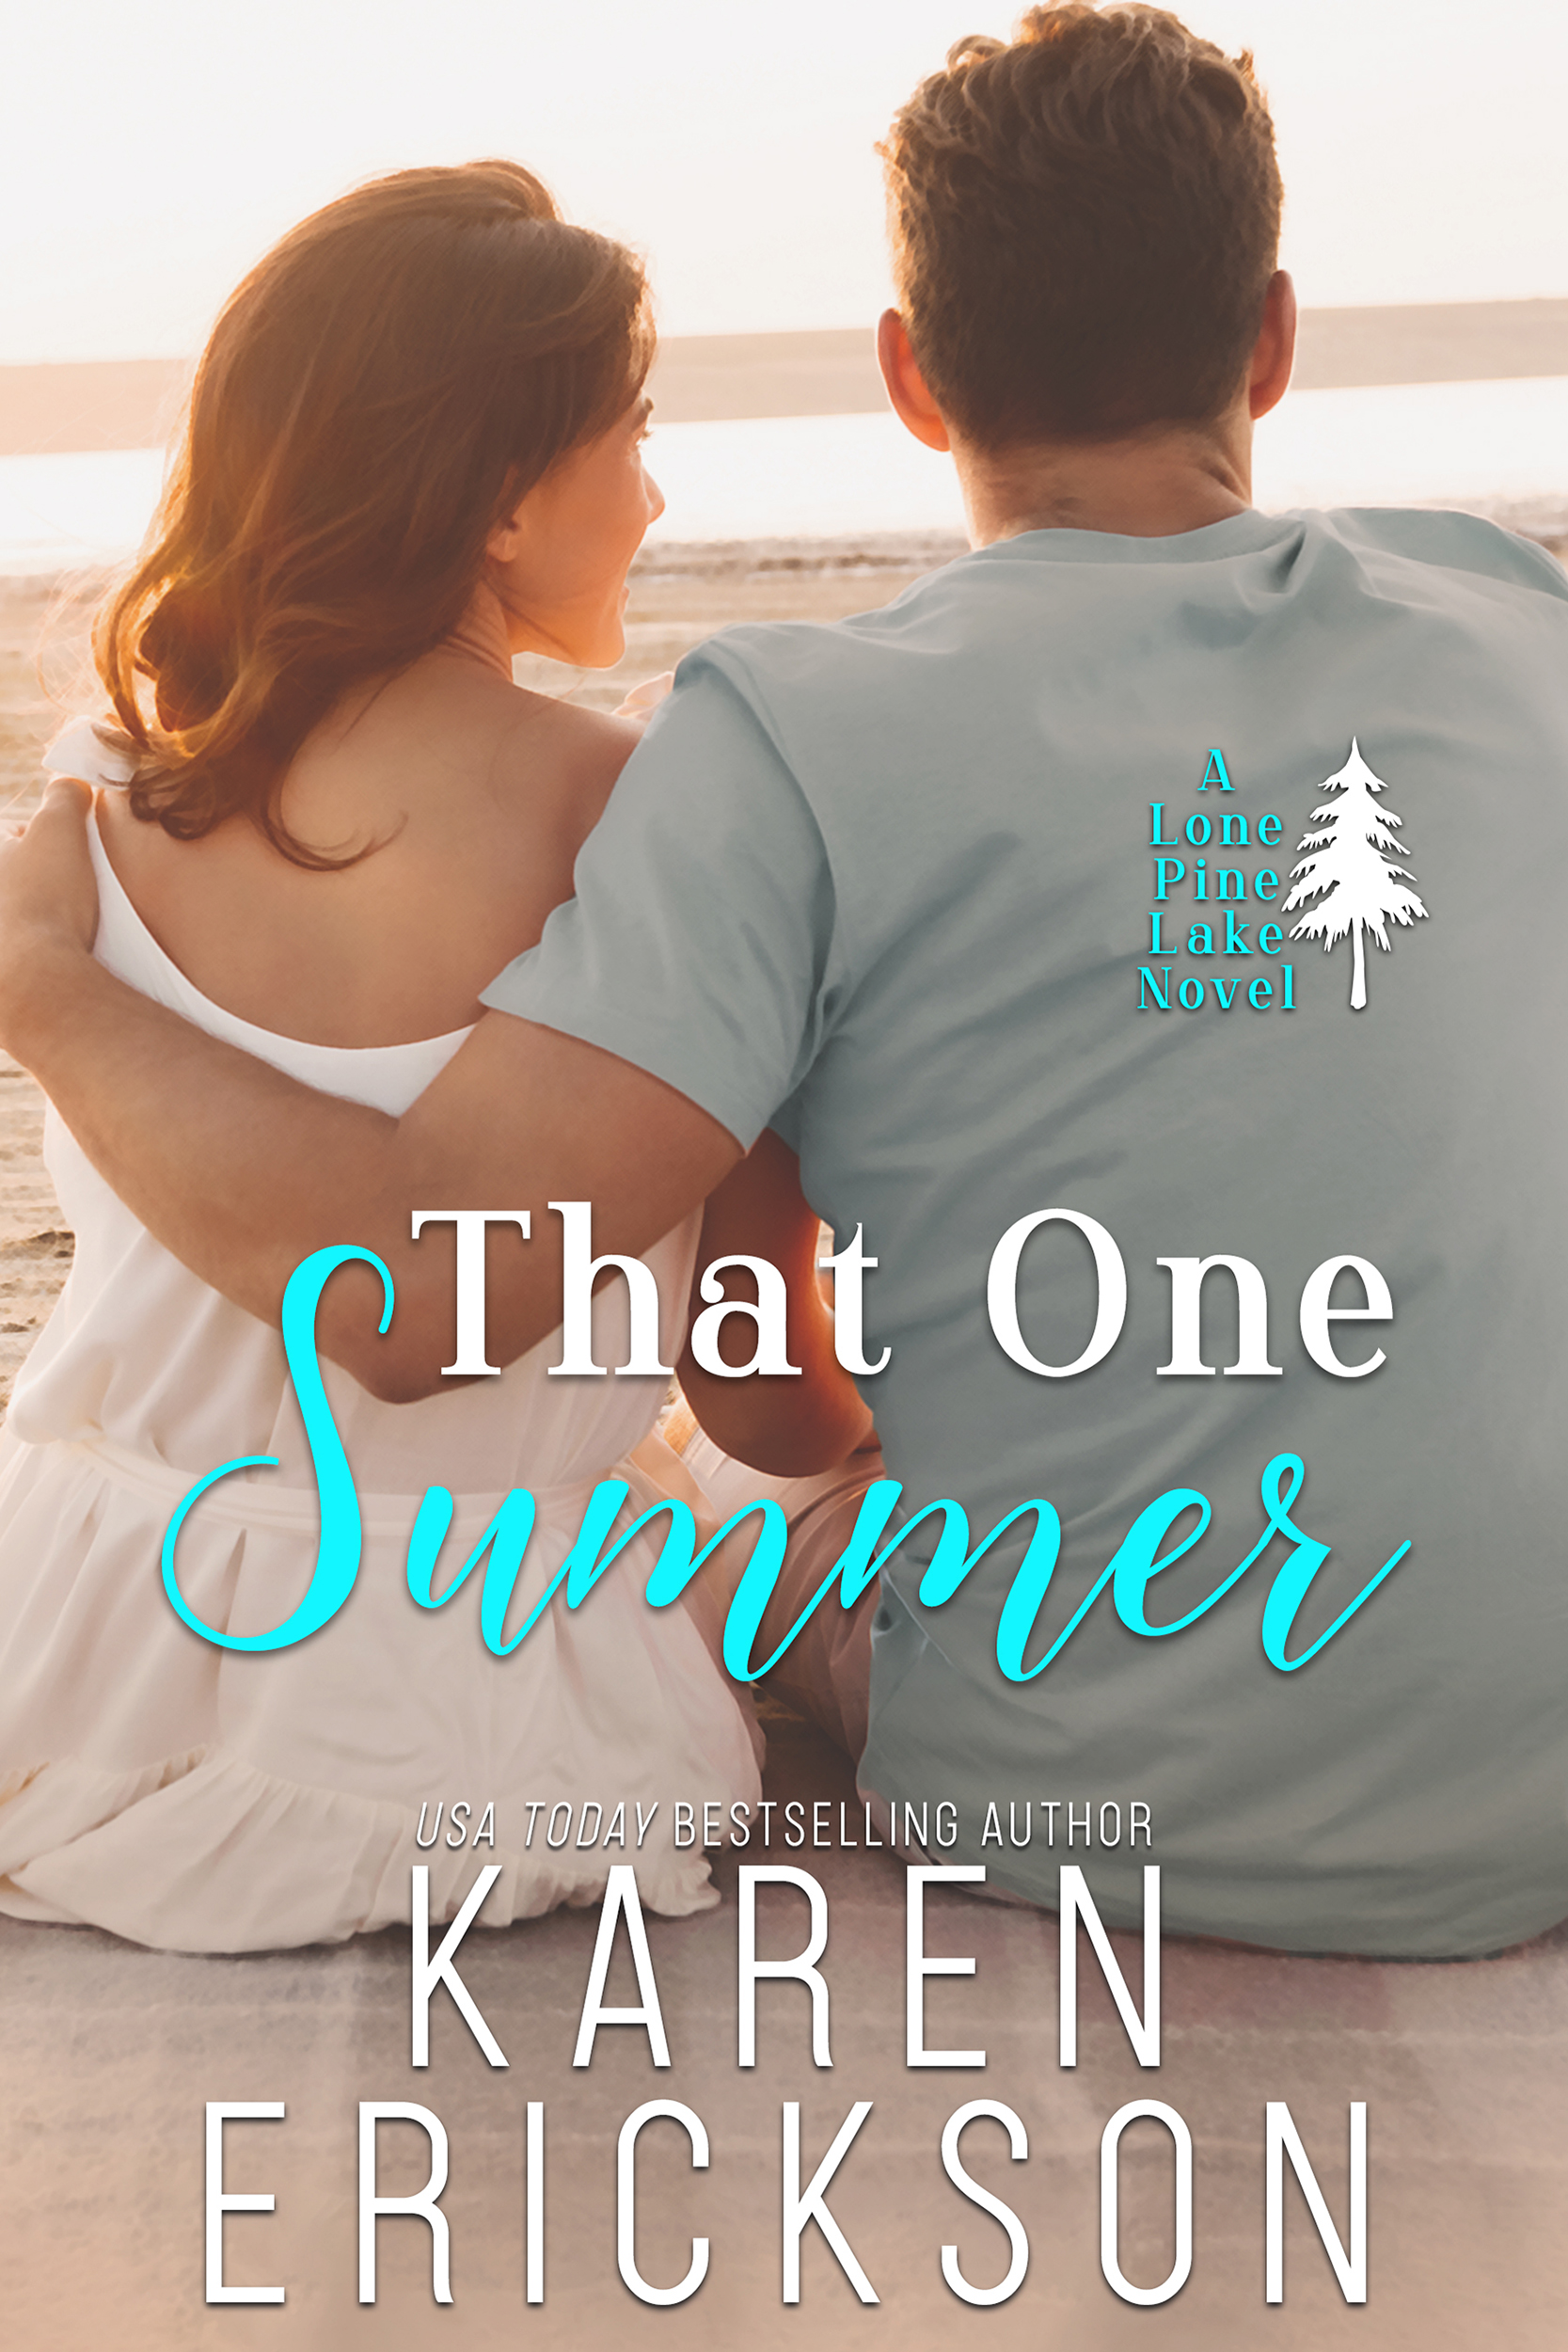 Copy of ThatOneSummer-Amazon.jpg